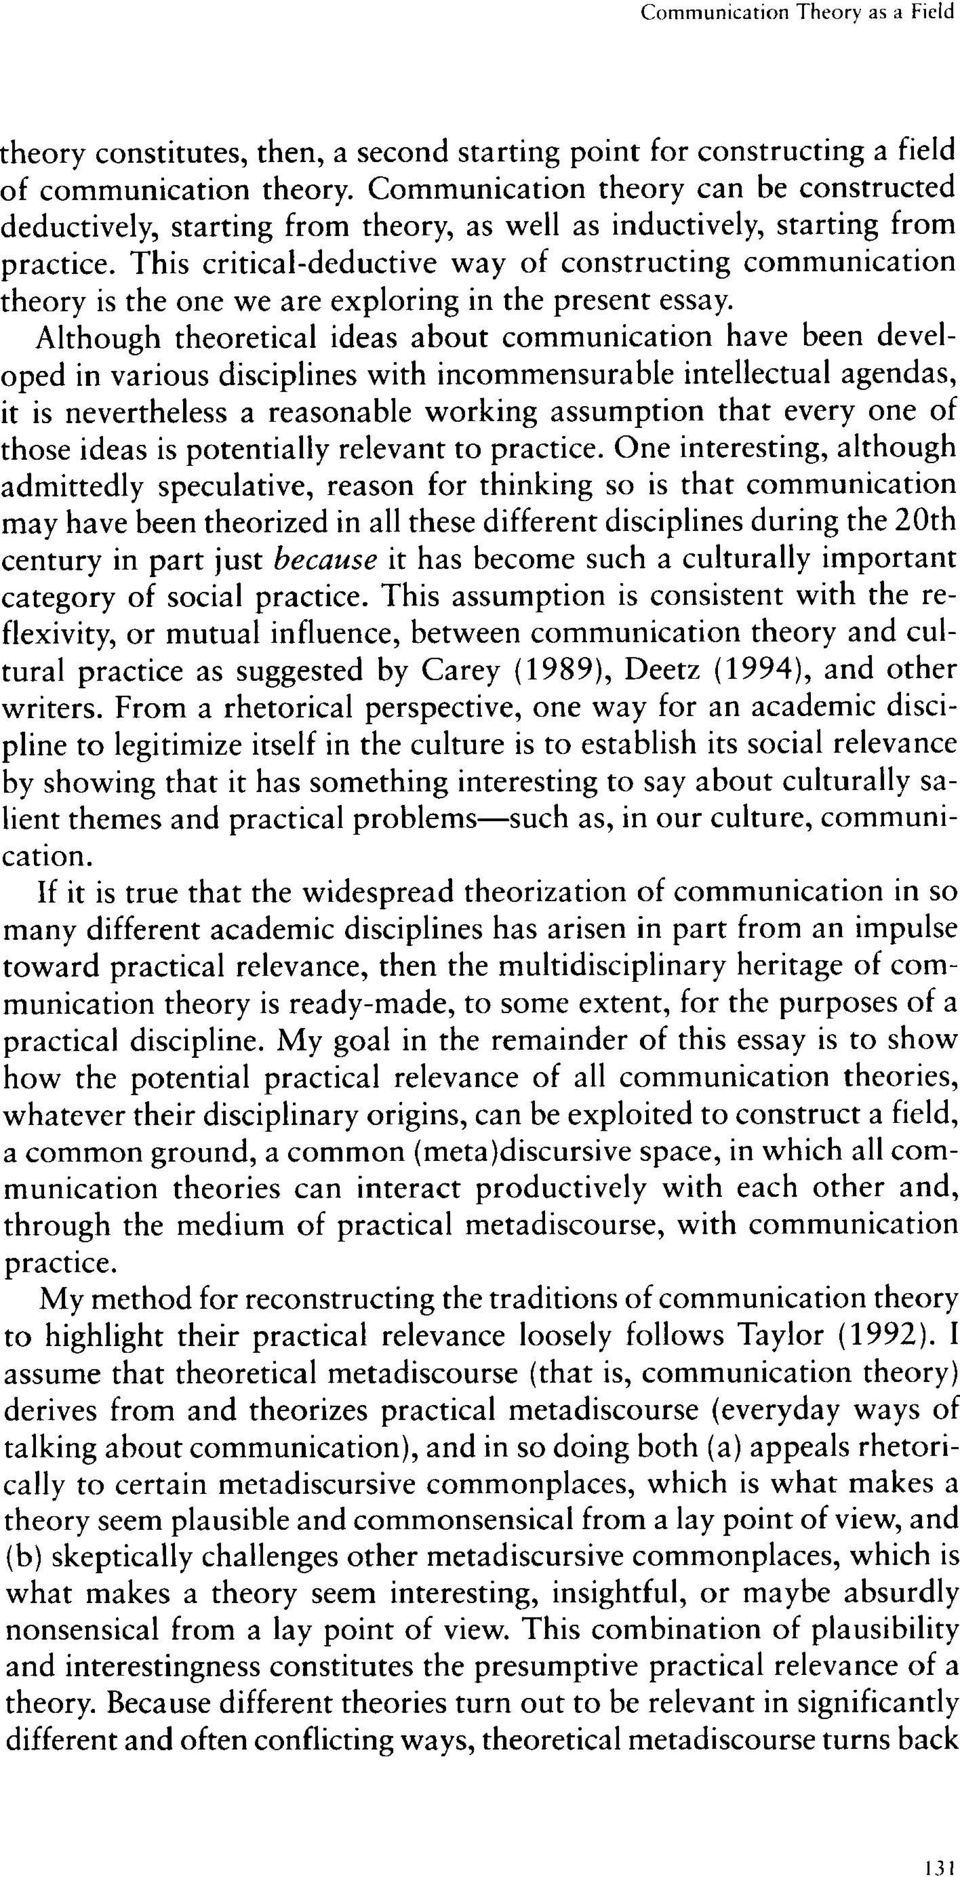 This critical-deductive way of constructing communication theory is the one we are exploring in the present essay.